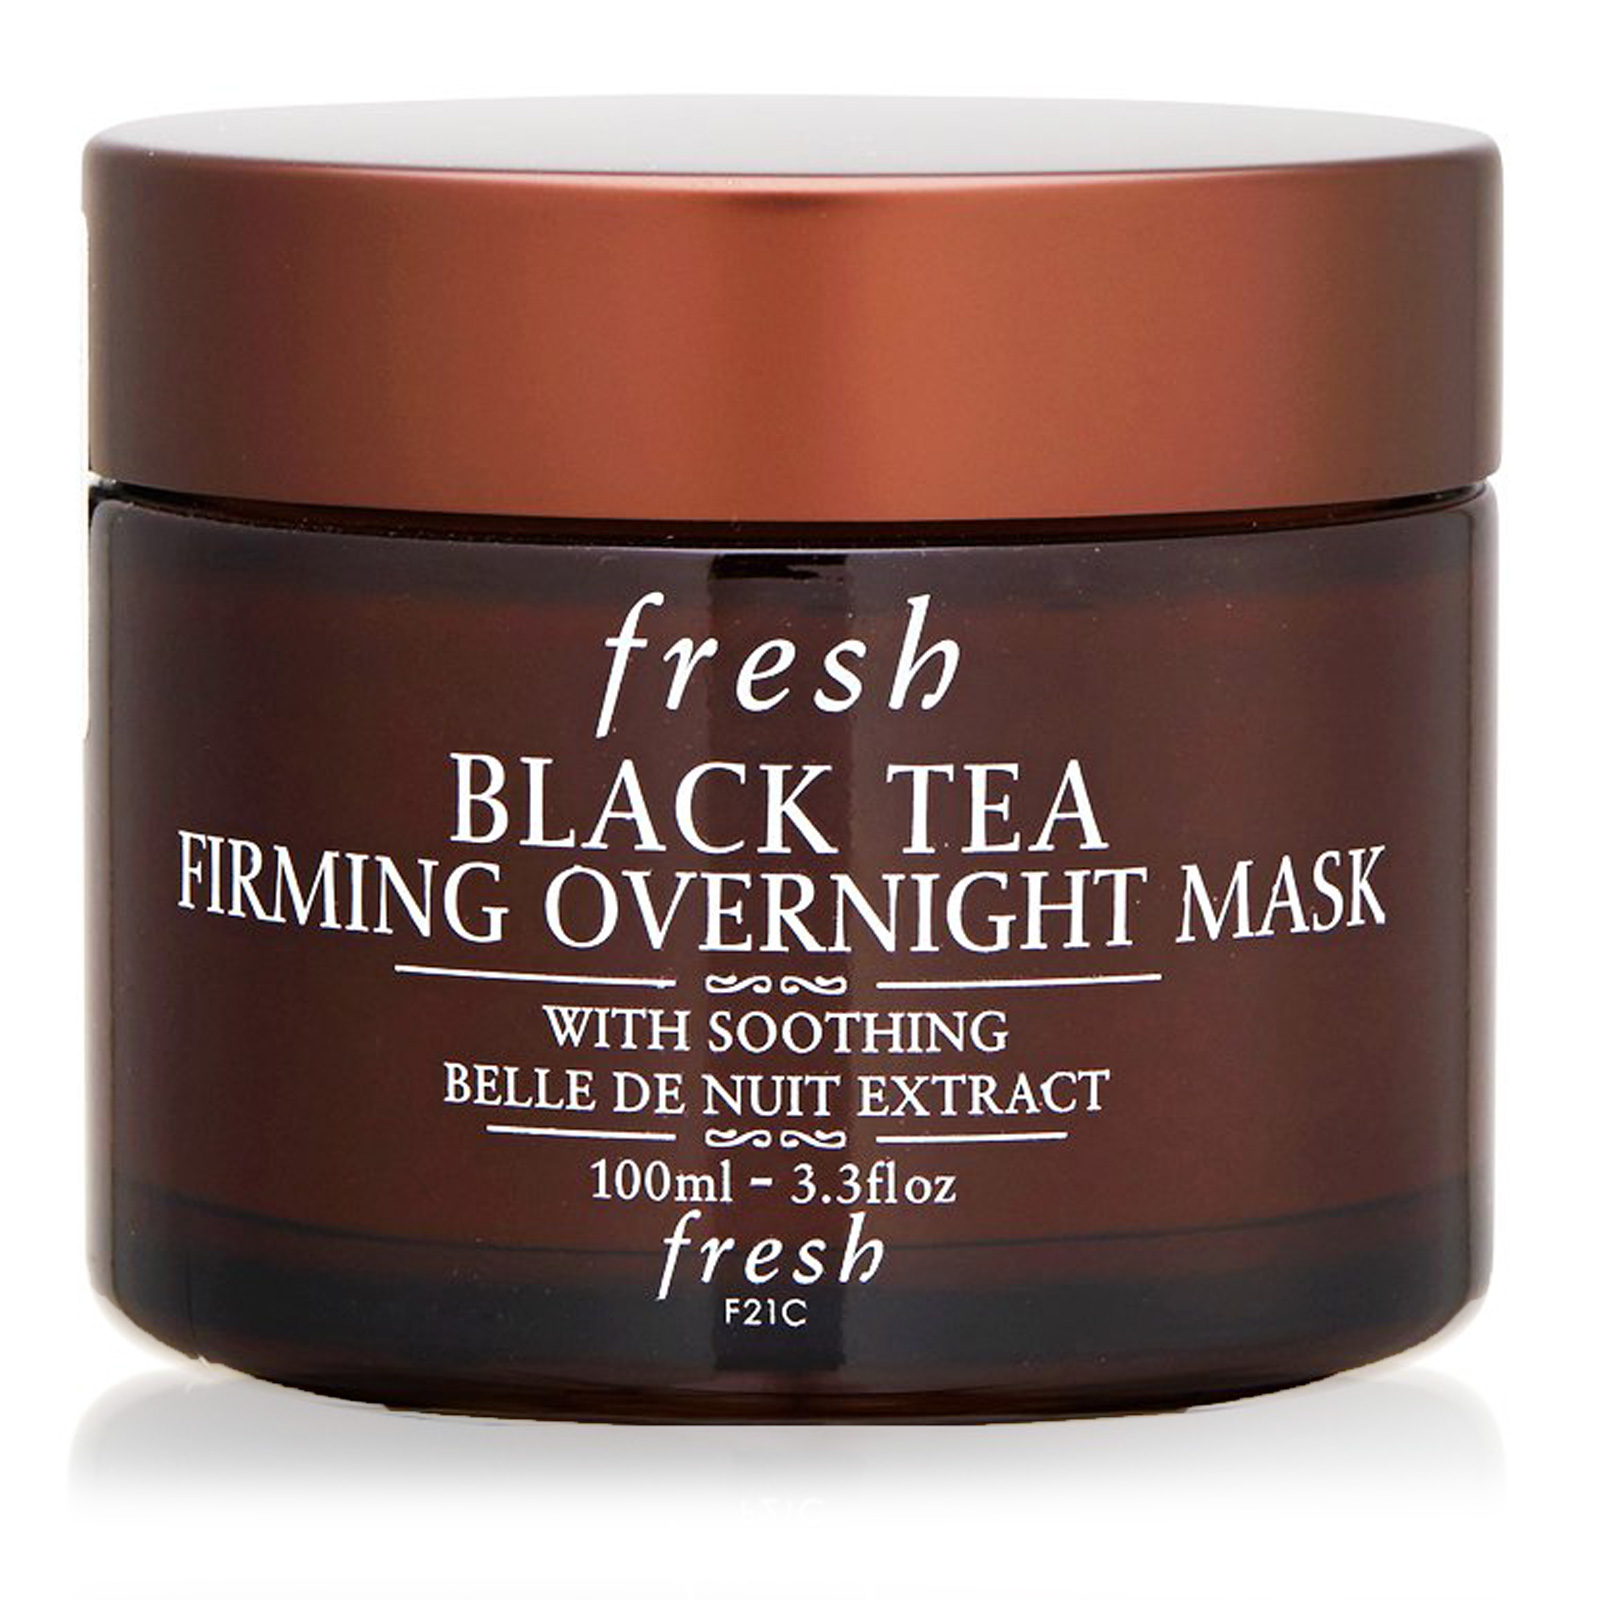 Firming Overnight Mask